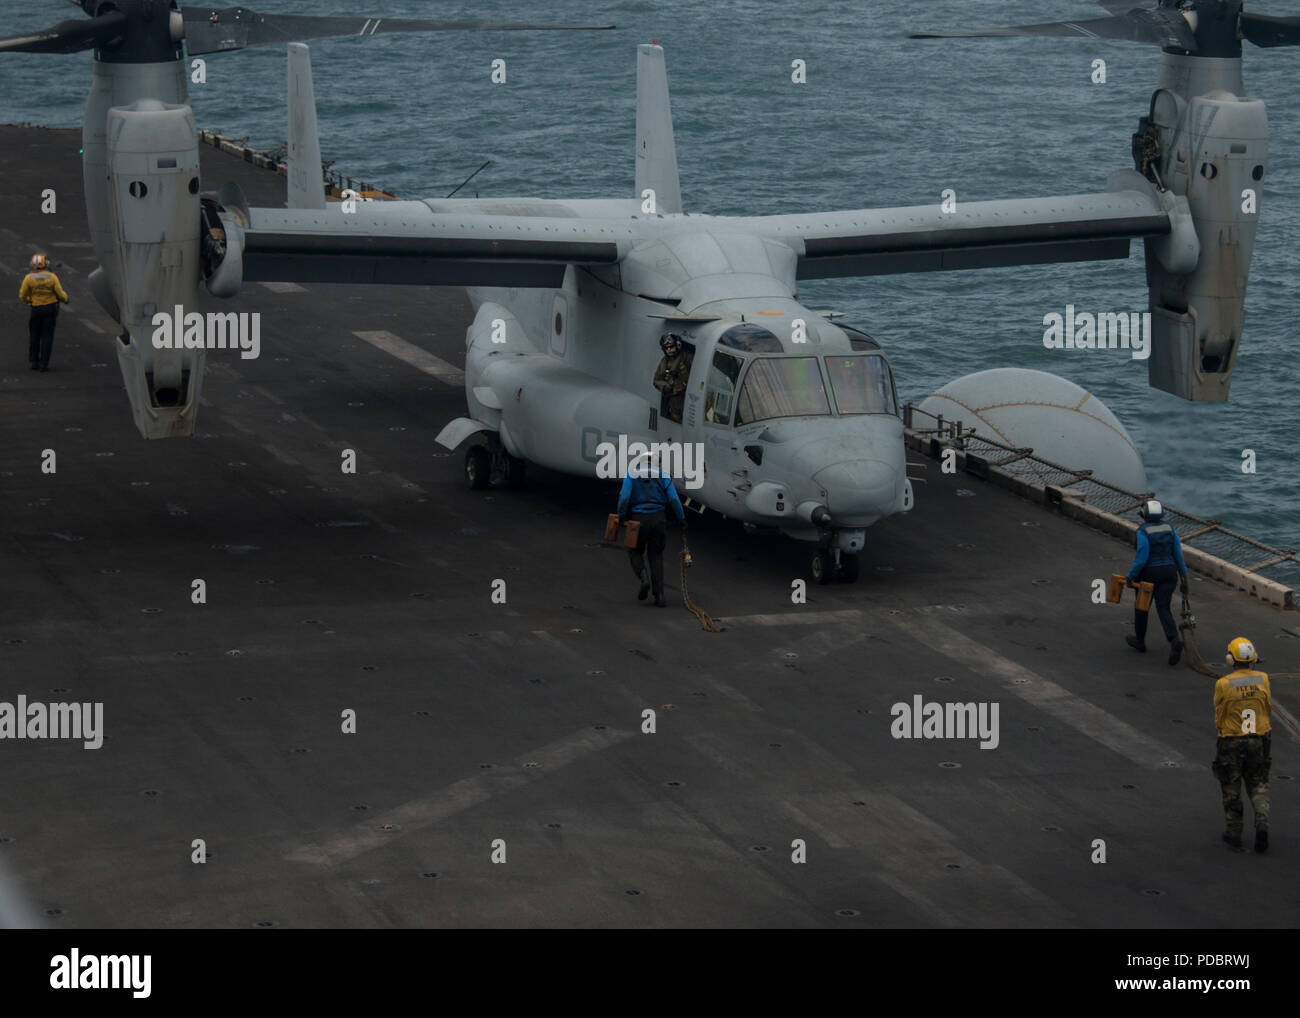 180803-N-ZG607-0027  ATLANTIC OCEAN (Aug. 3, 2018) An MV-22B Osprey, attached to Marine Medium Tiltrotor Squadron (VMM) 162 (Reinforced), lands on the flight deck of the Wasp-class amphibious assault ship USS Iwo Jima (LHD 7), Aug. 3, 2018. Iwo Jima is deployed with its amphibious ready group in support of maritime security operations and theatre security cooperation efforts in Europe and the Middle East. (U.S. Navy photo by Mass Communication Specialist 3rd Class Dominick A. Cremeans/Released) Stock Photo